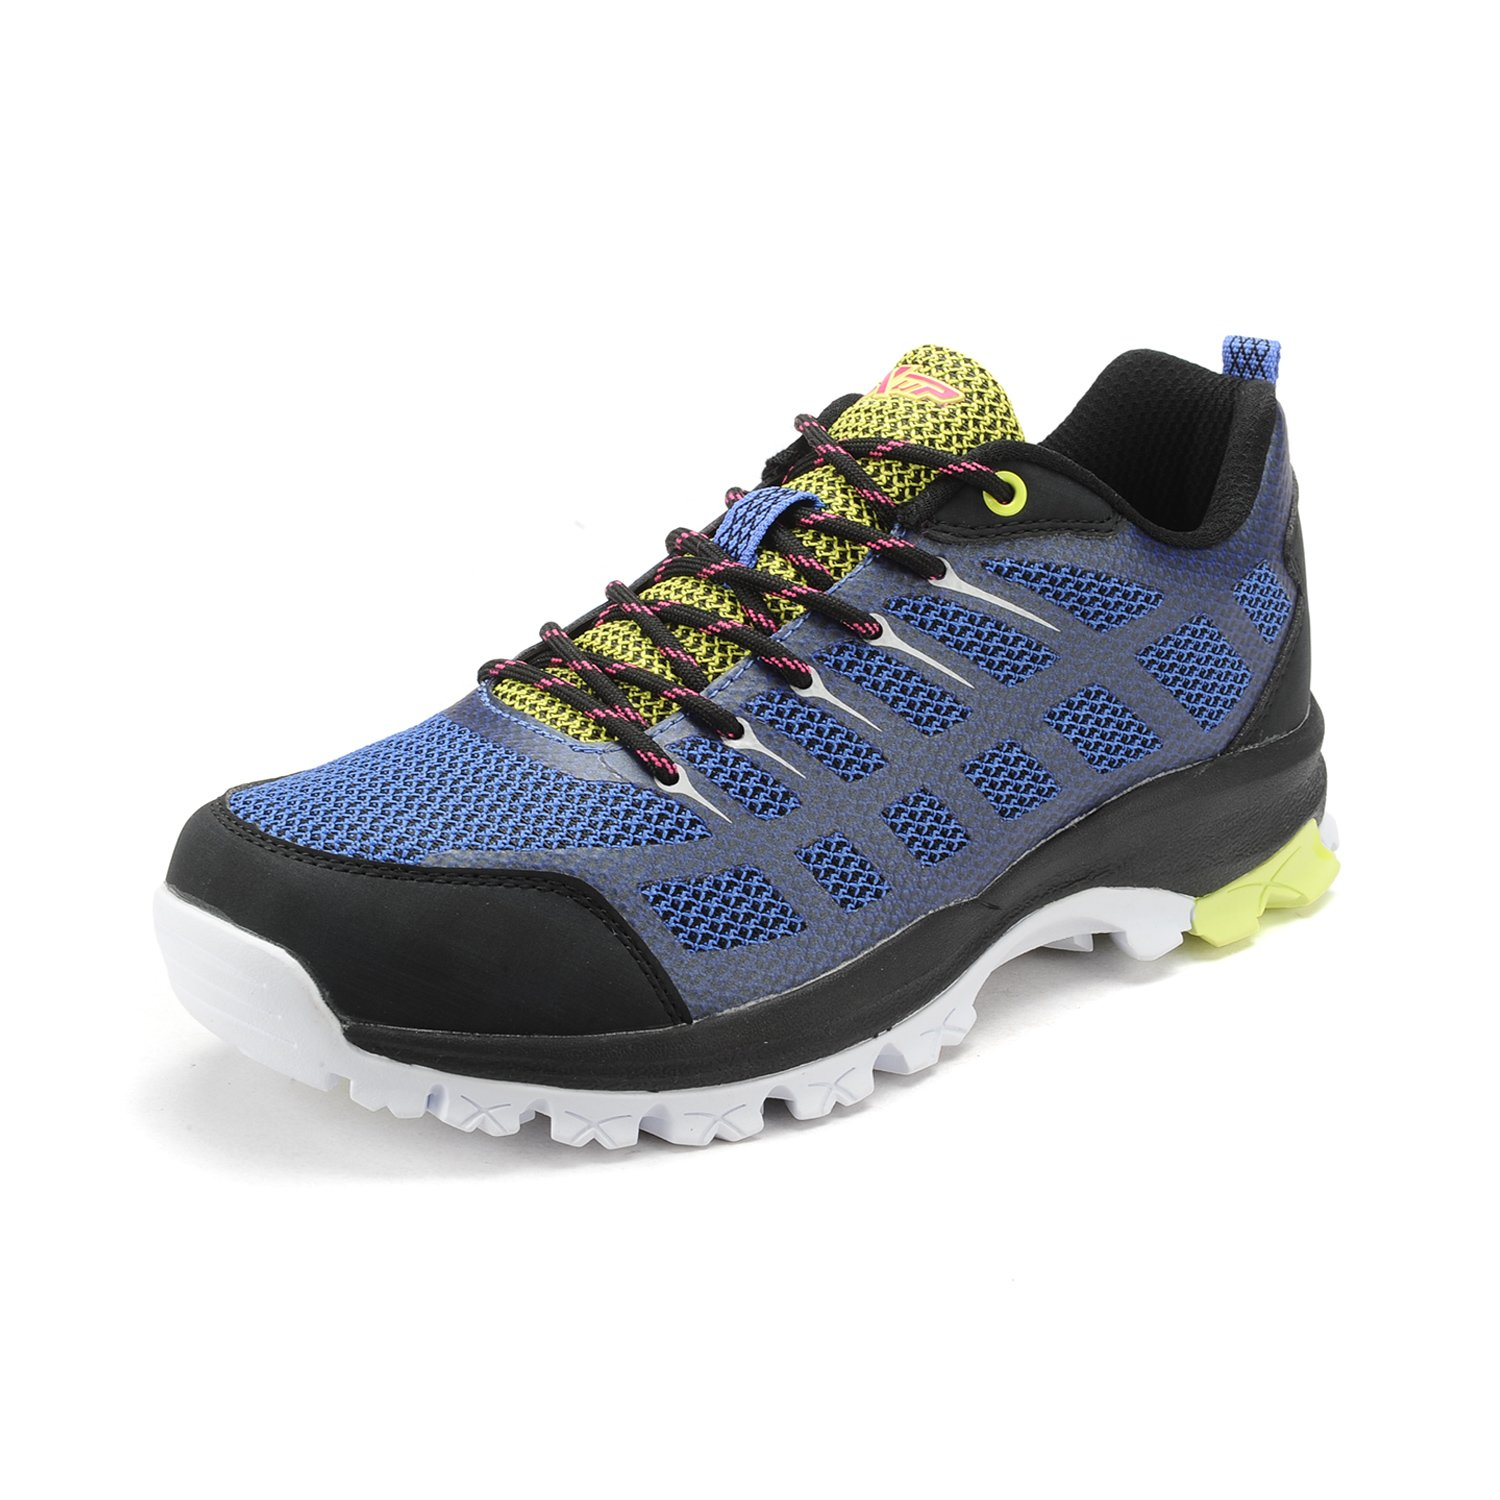 XUP Men's Textile + Synthetic Trail Hiking Shoes